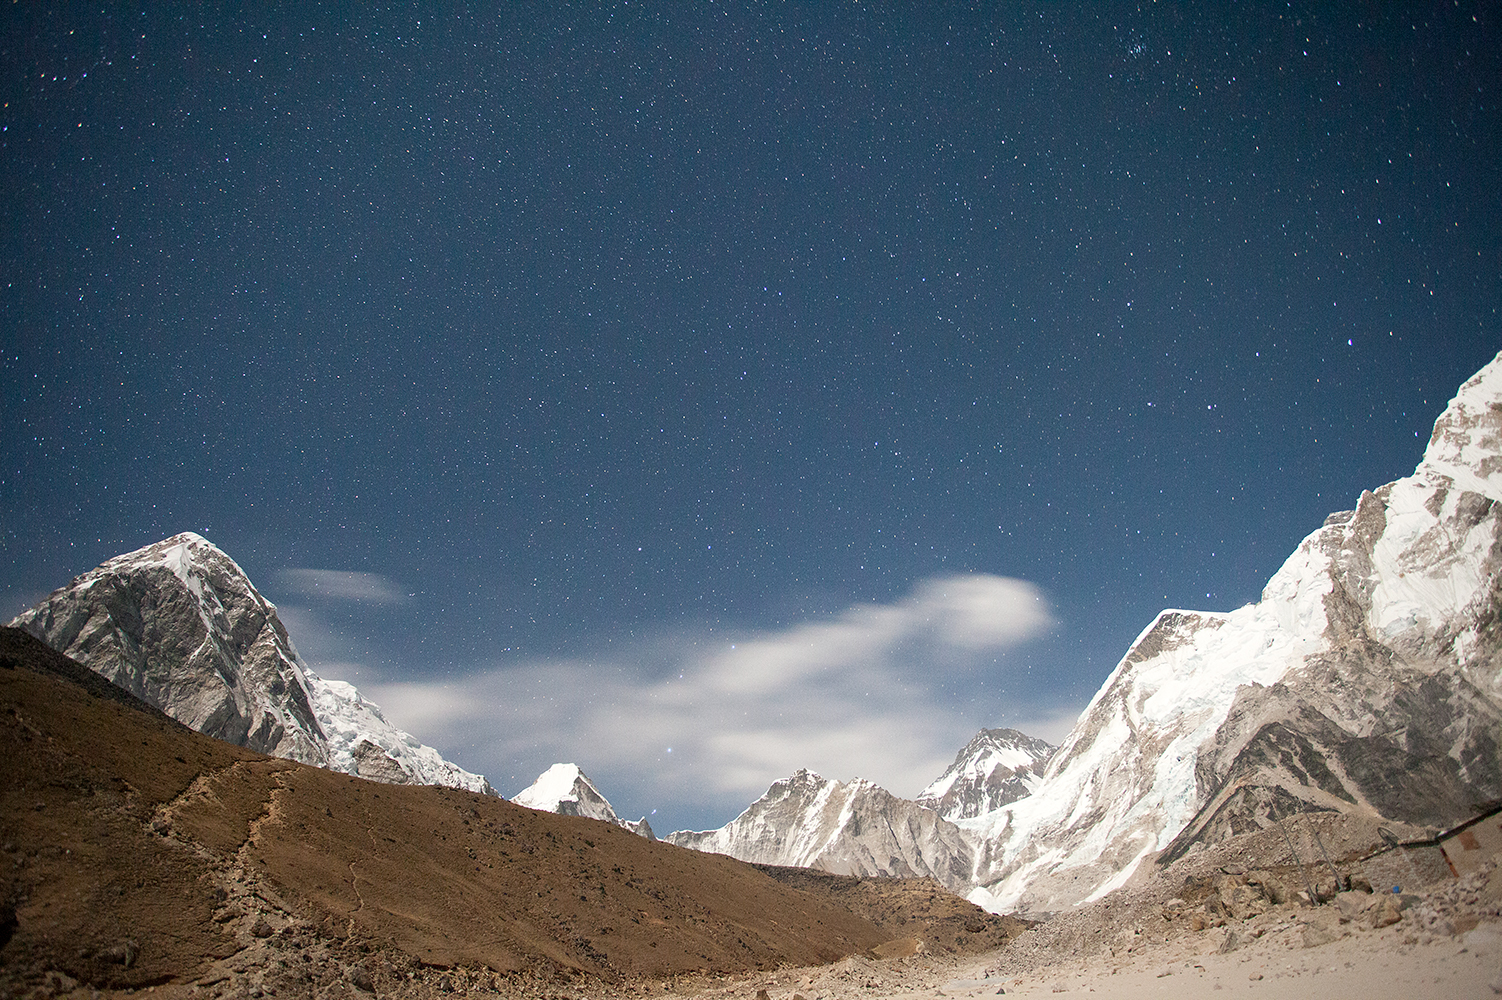 astrophotography mountain photo without star trails